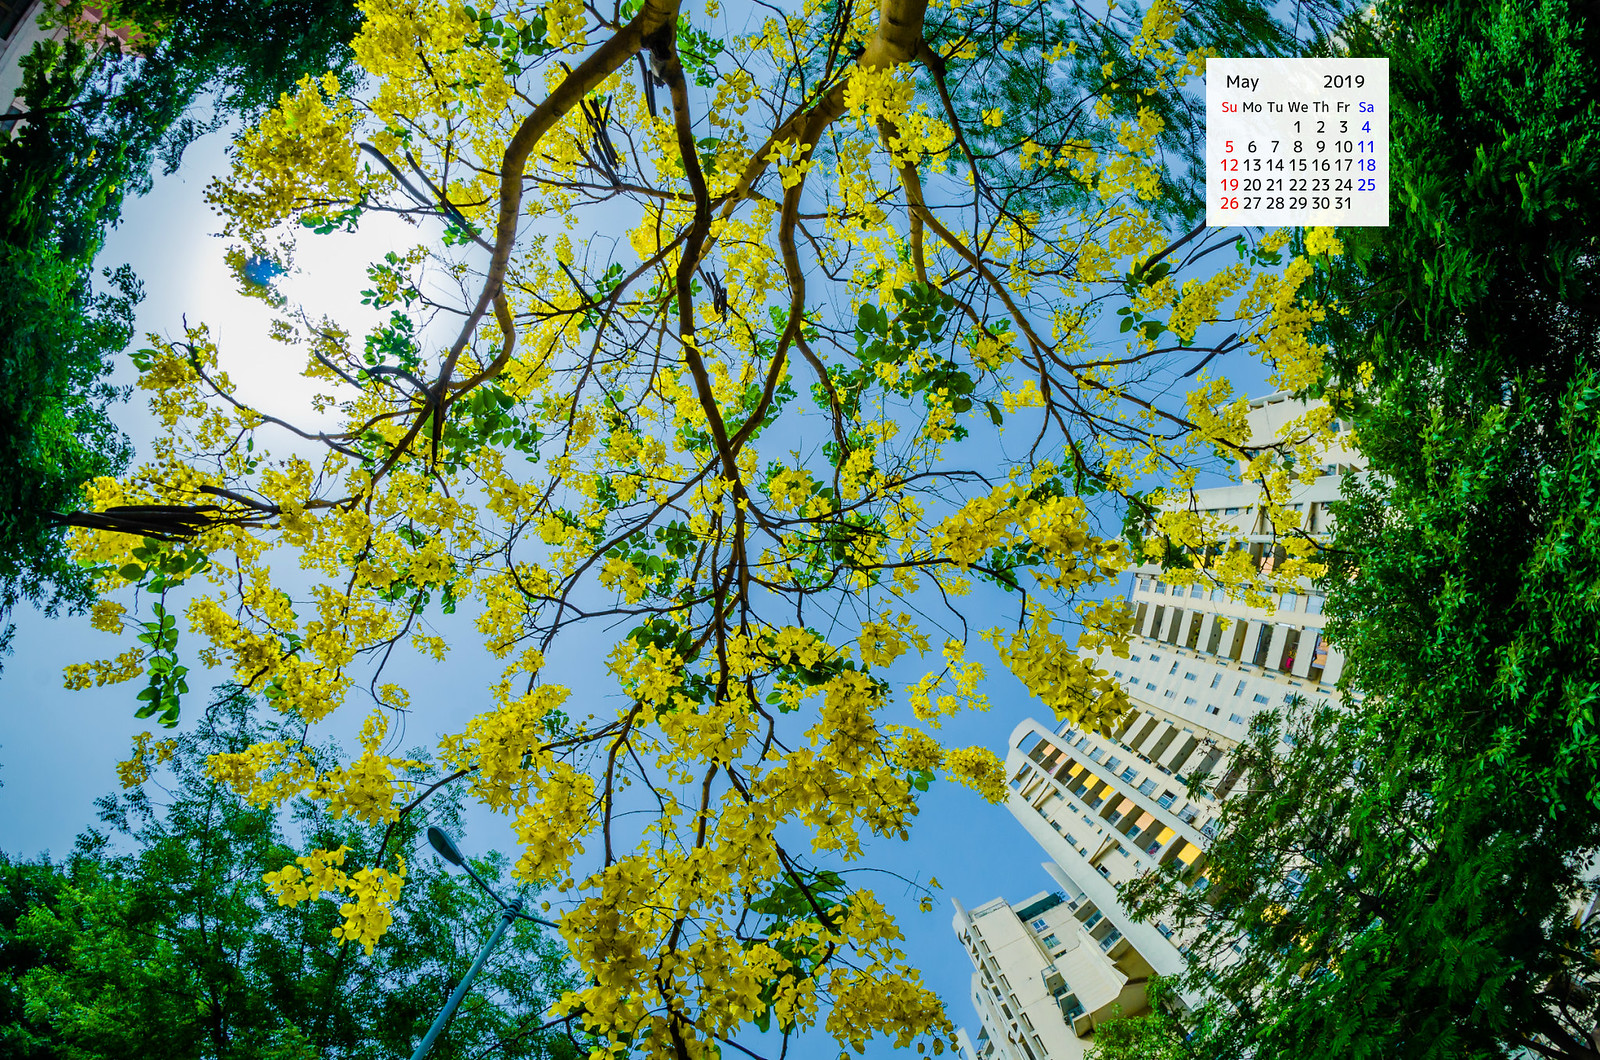 Free Downlaod May 2019 Wallpaper Calendar